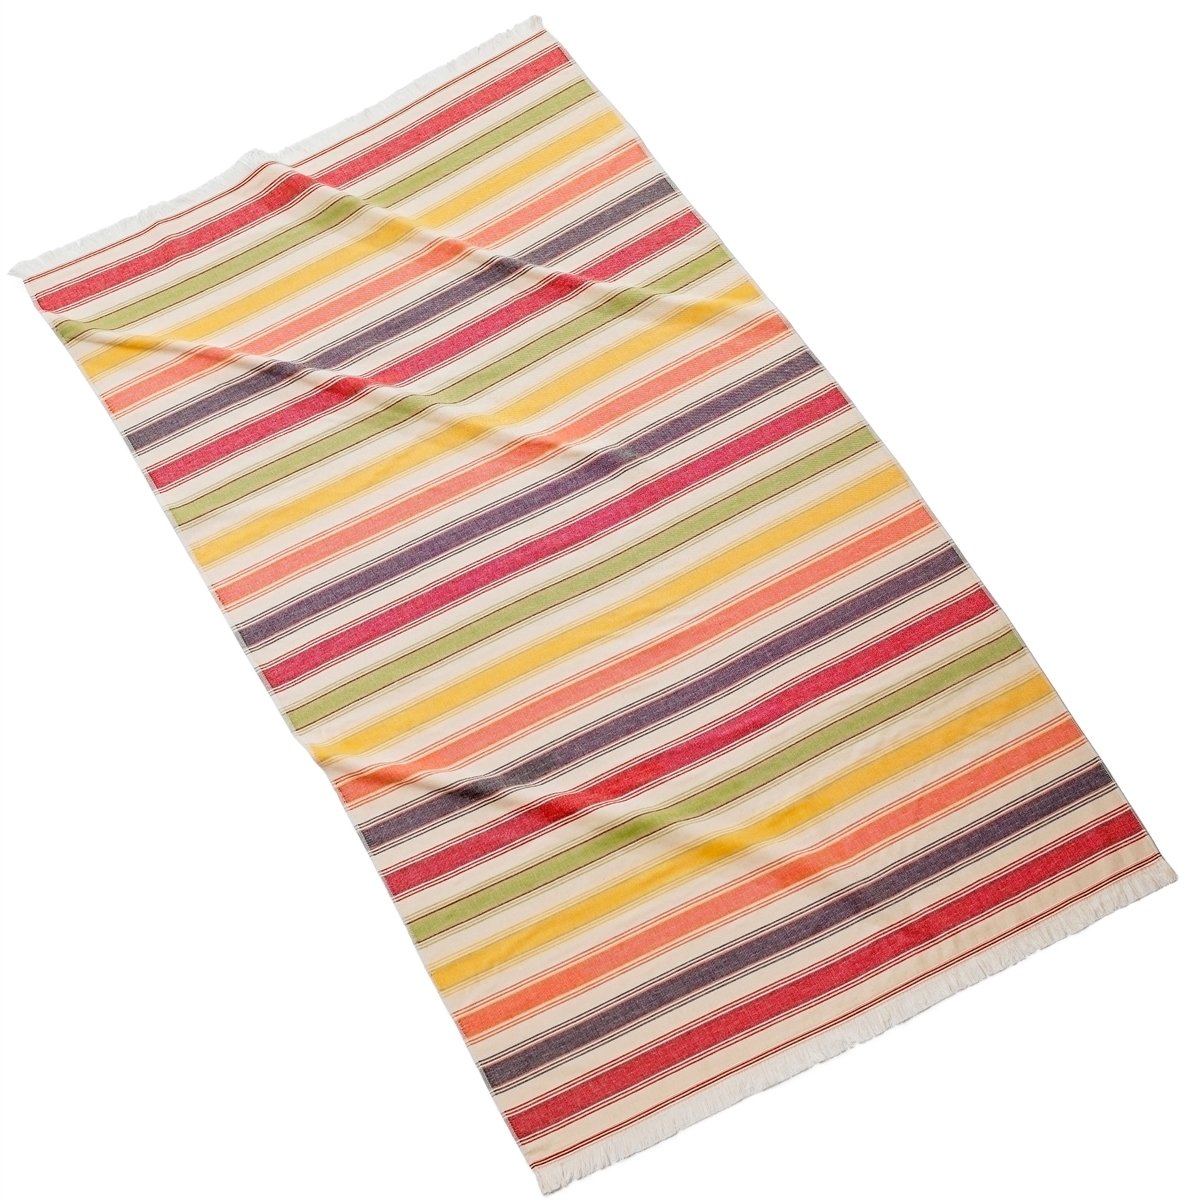 Alouda Beach Towels